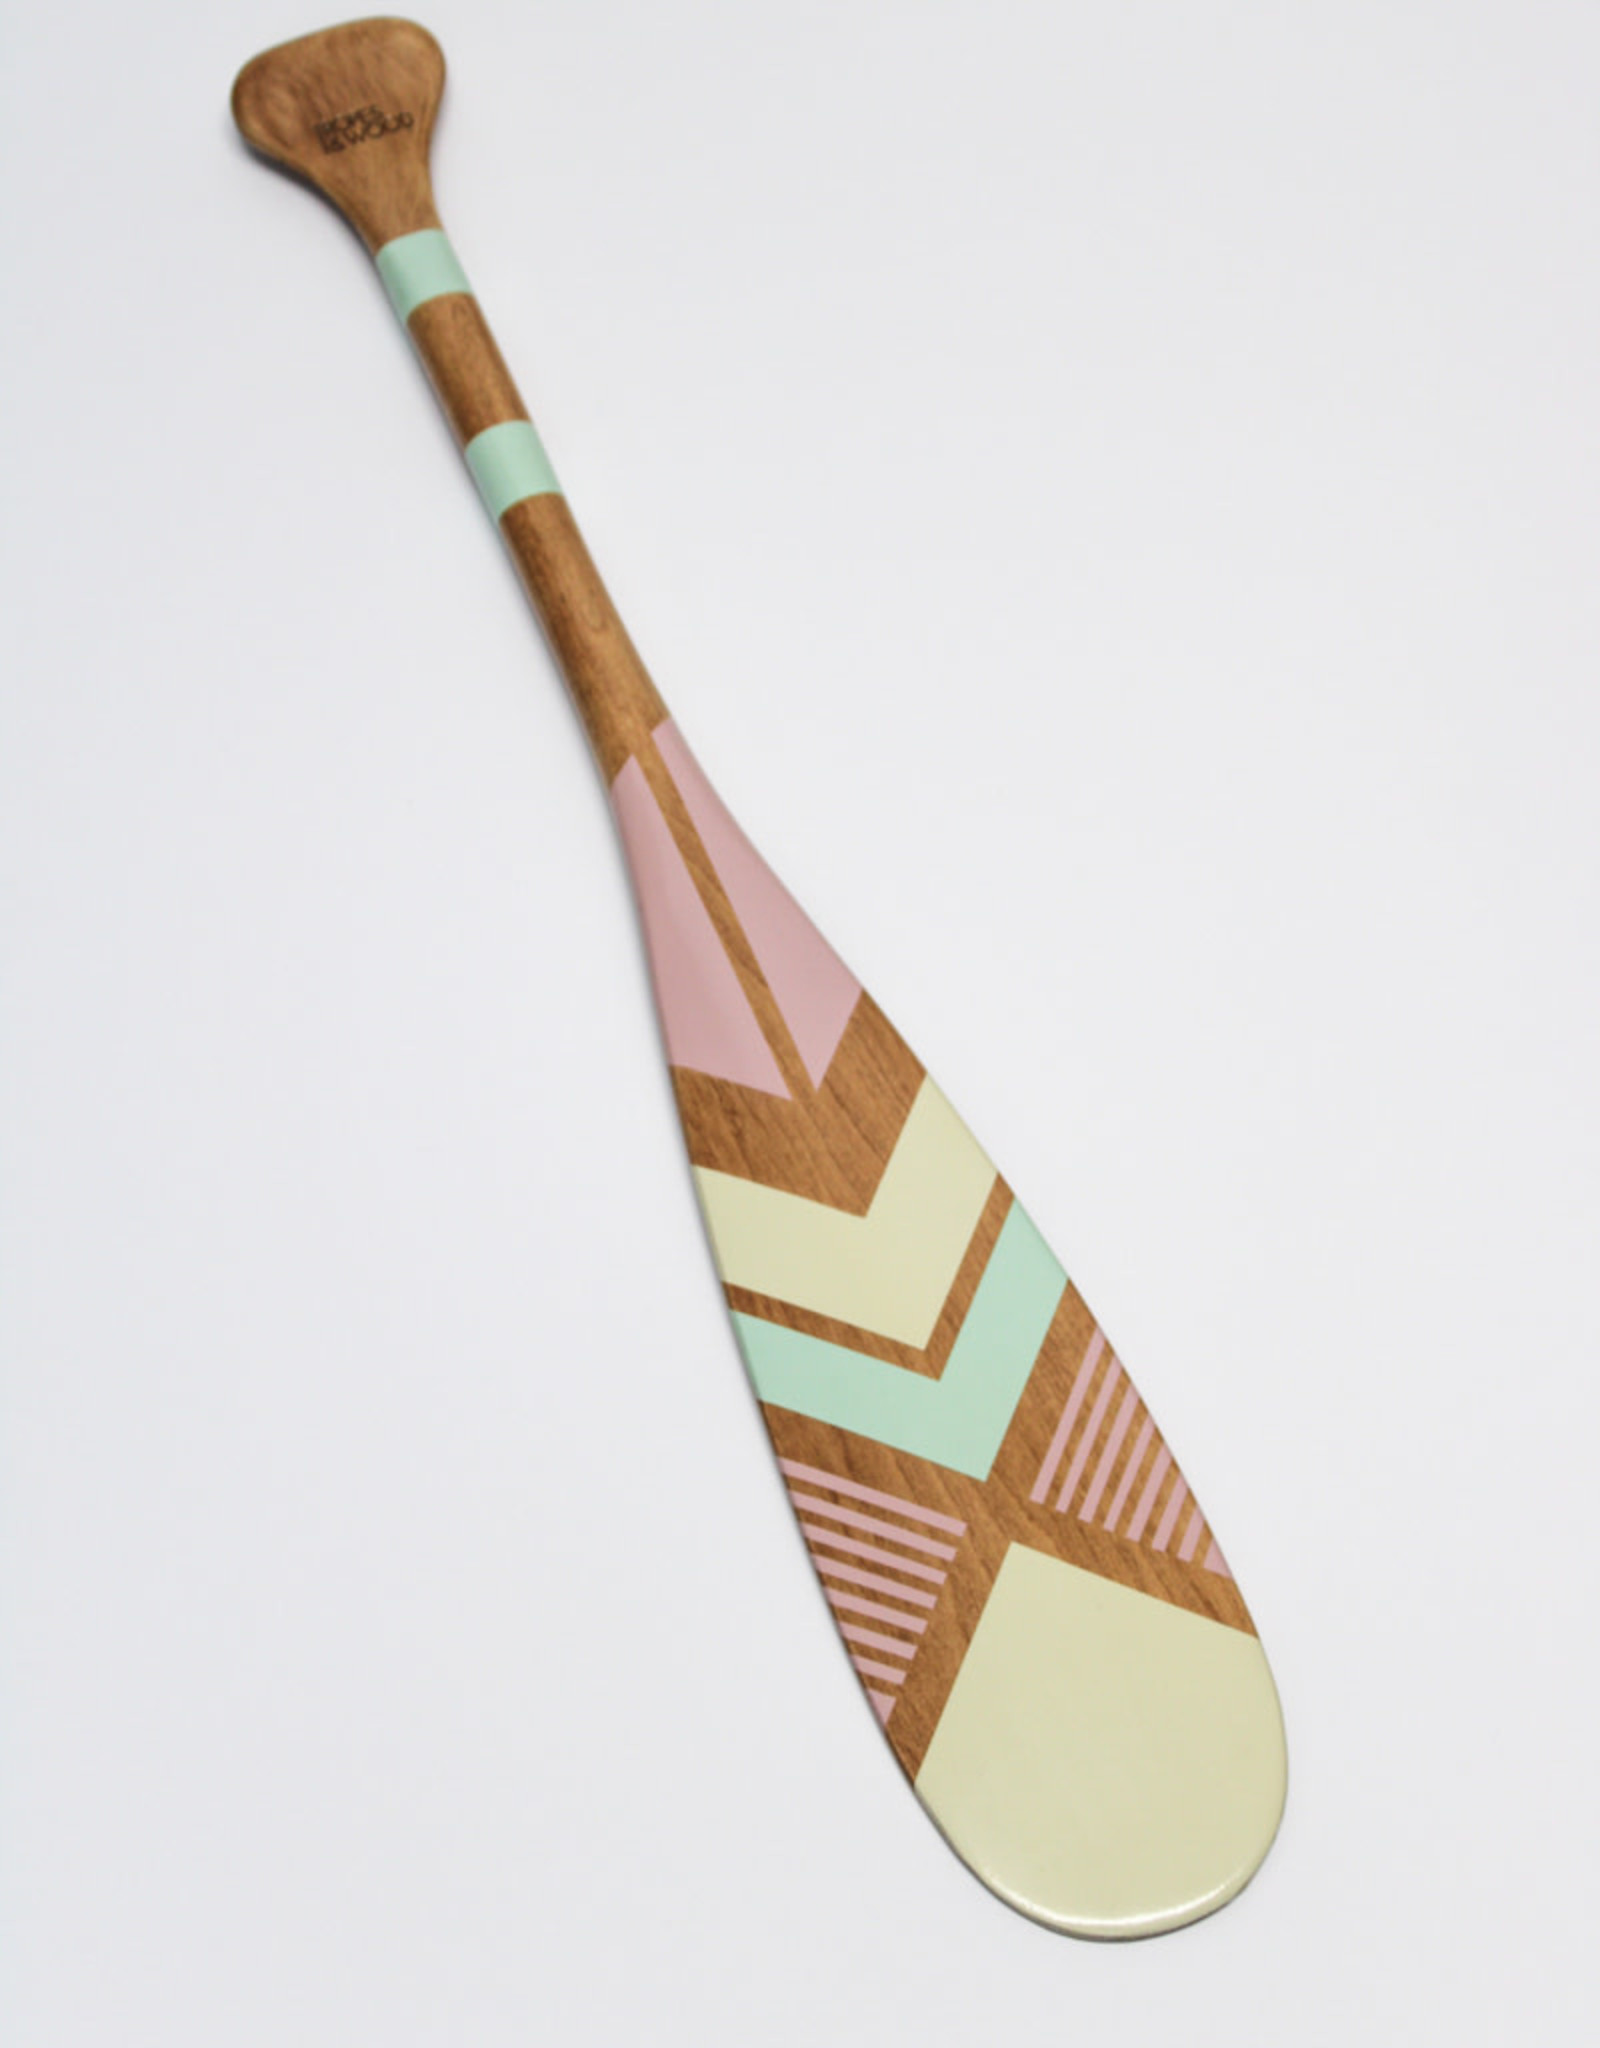 Ropes & Wood Mini Paddle 24'' with Leather Mount